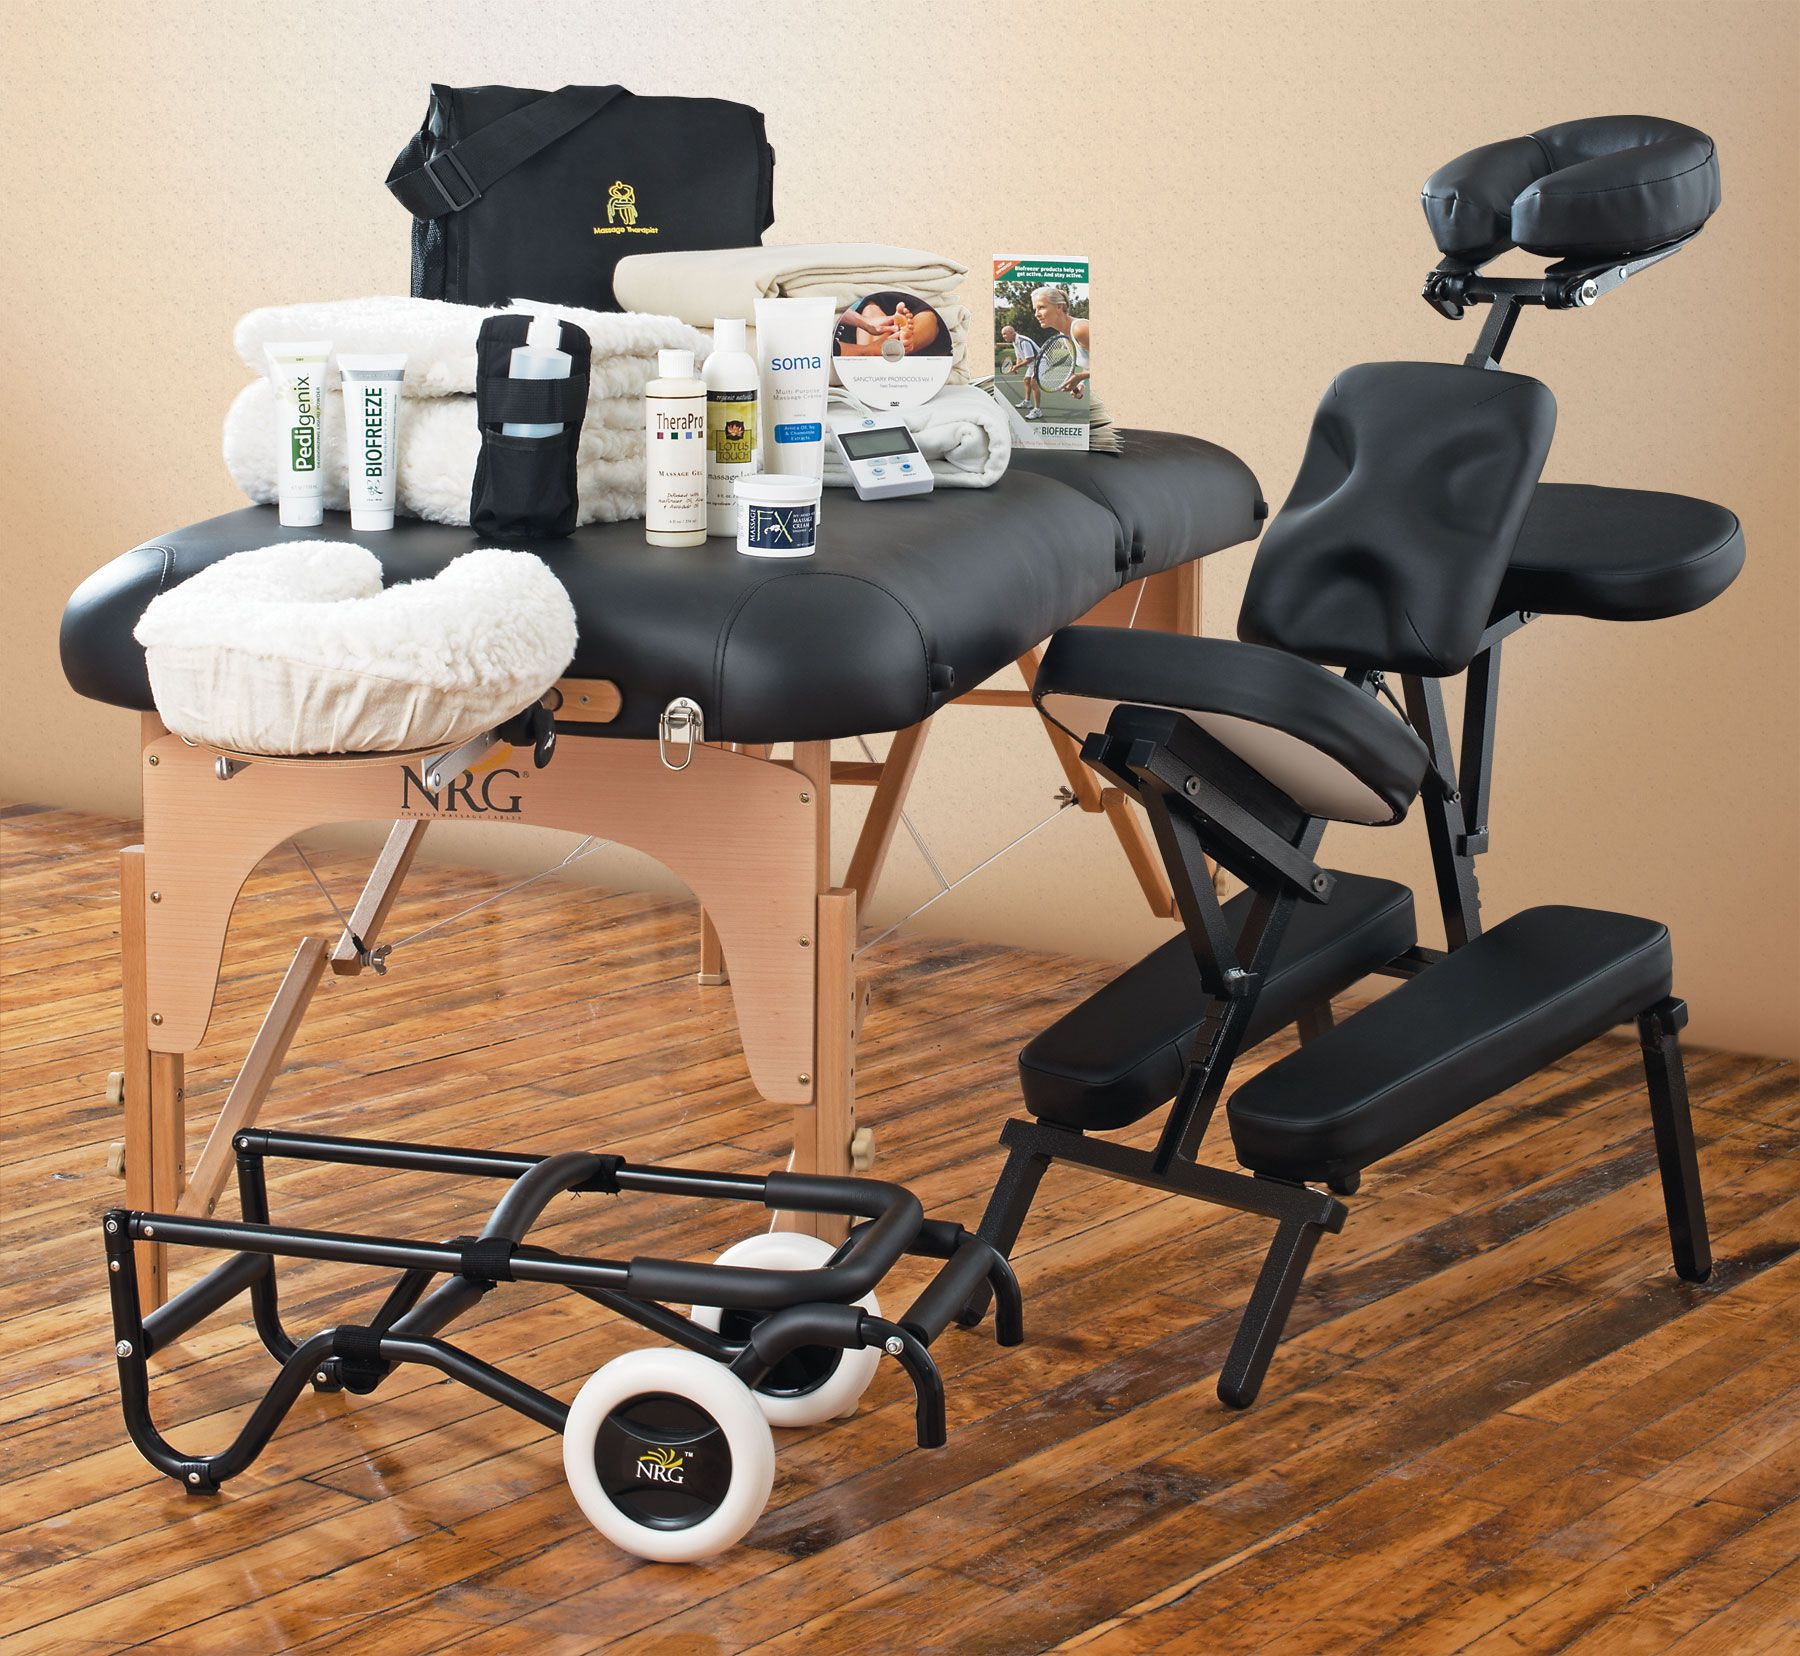 Lightweight portable massage table - Ultimate Business Starter Package Vedalux Upgrade